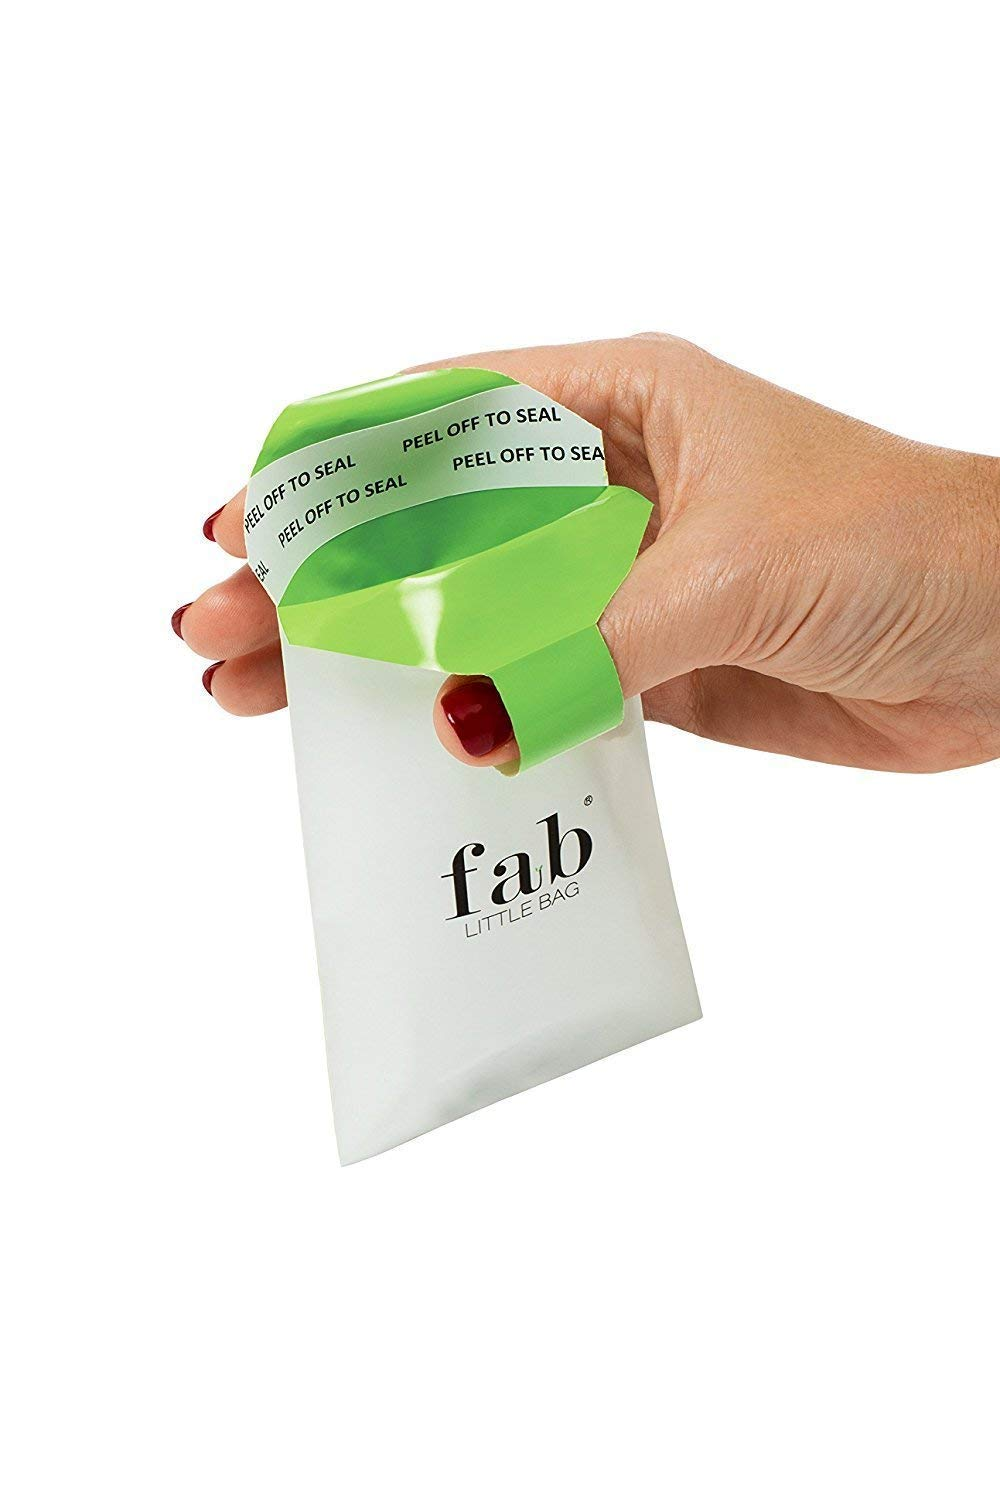 Fab Little Bag Saver with 200 Disposable Biodegradable Feminine Hygiene Product Bags by Fab Little Bag